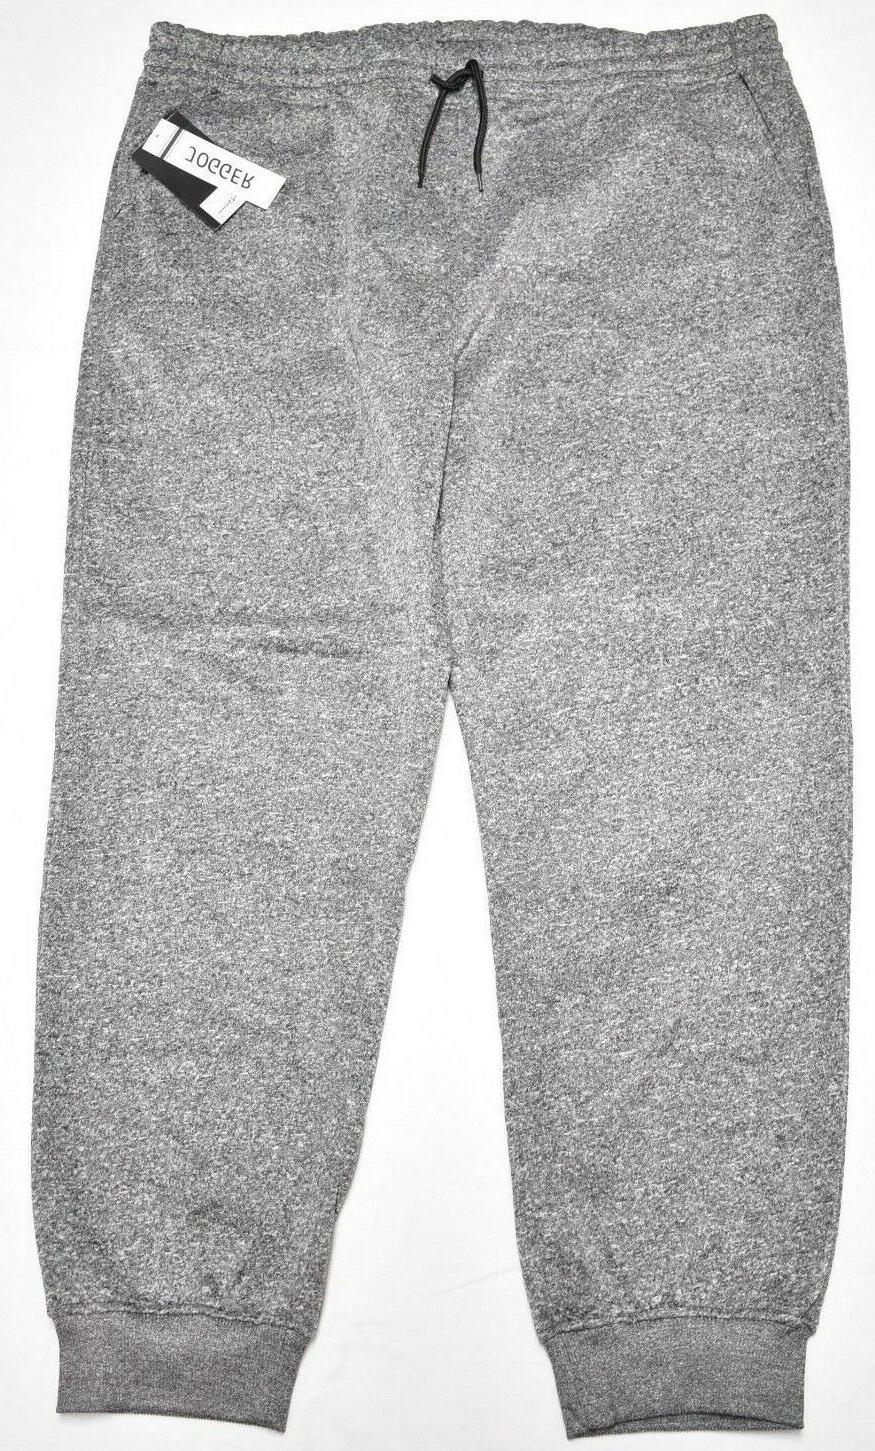 Southpole Pants Fleece Marled P189